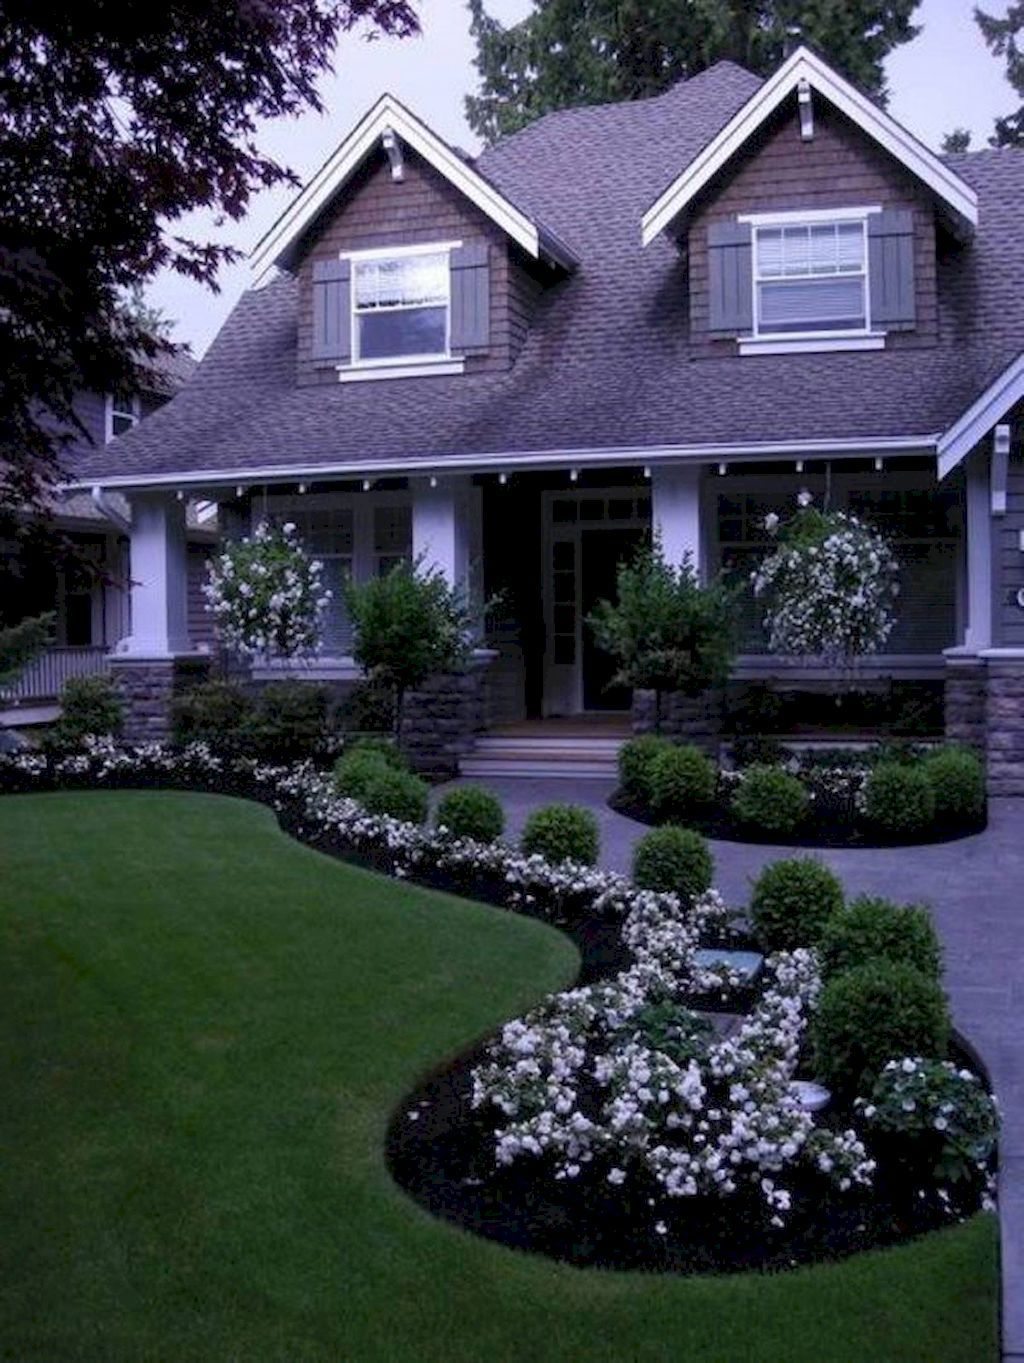 40 beautiful front yard landscaping ideas yard for New home front yard landscaping